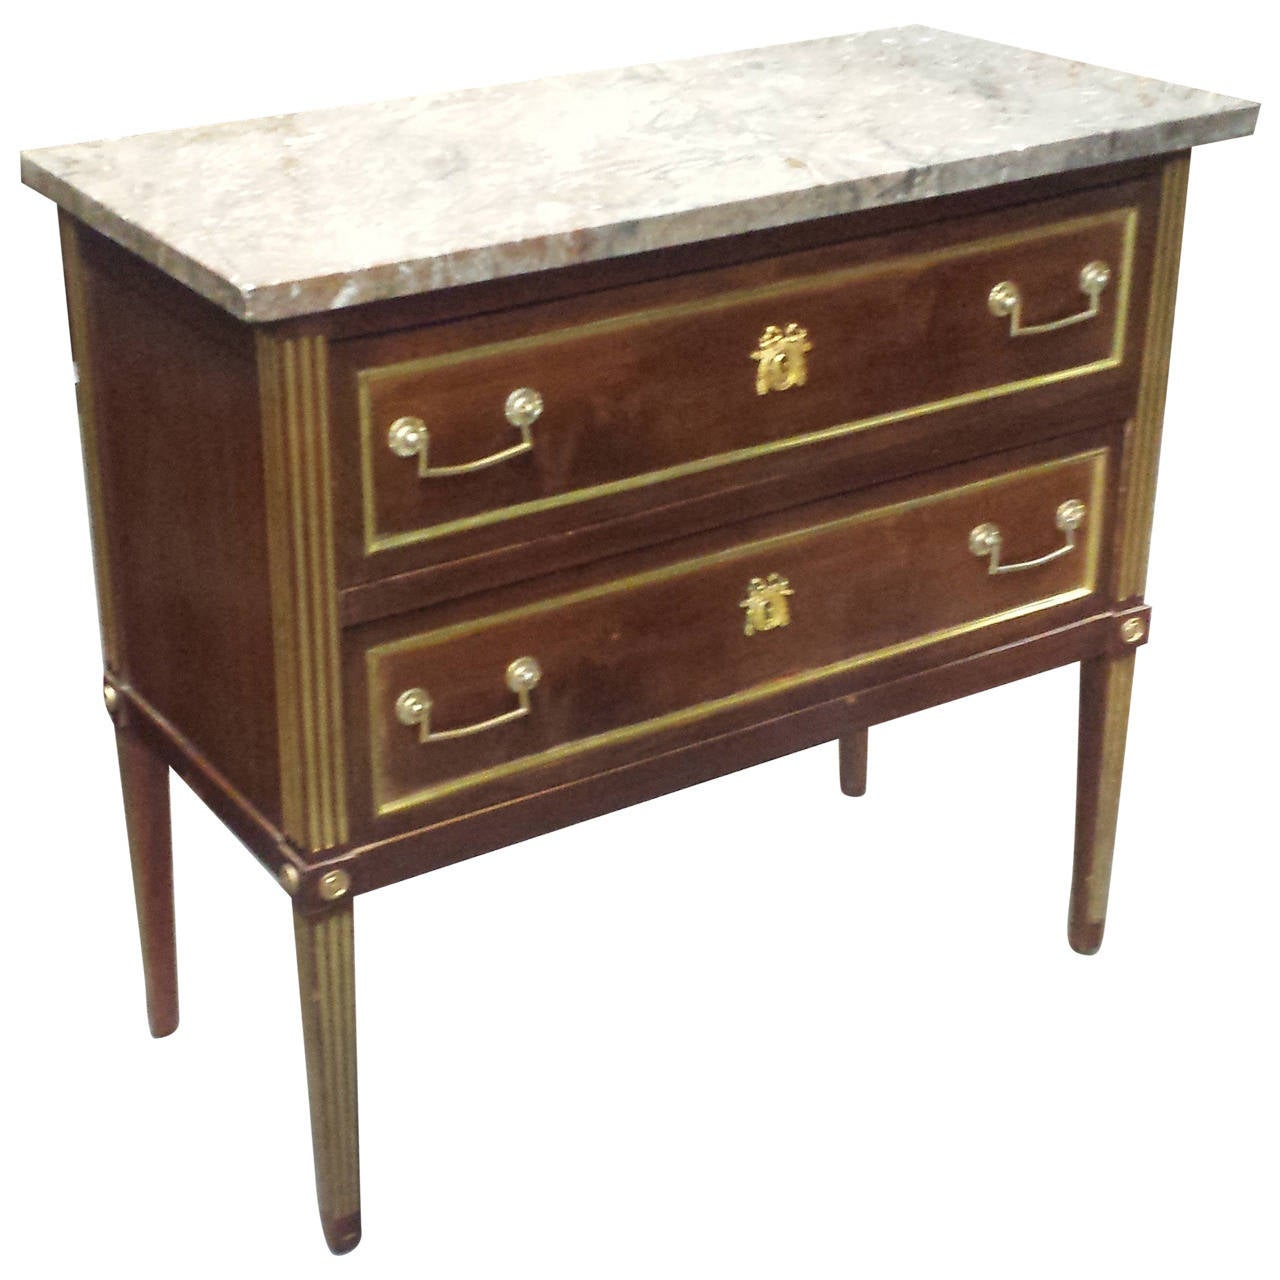 Baltic Marble-Top Commode in the Neoclassical Manner For Sale